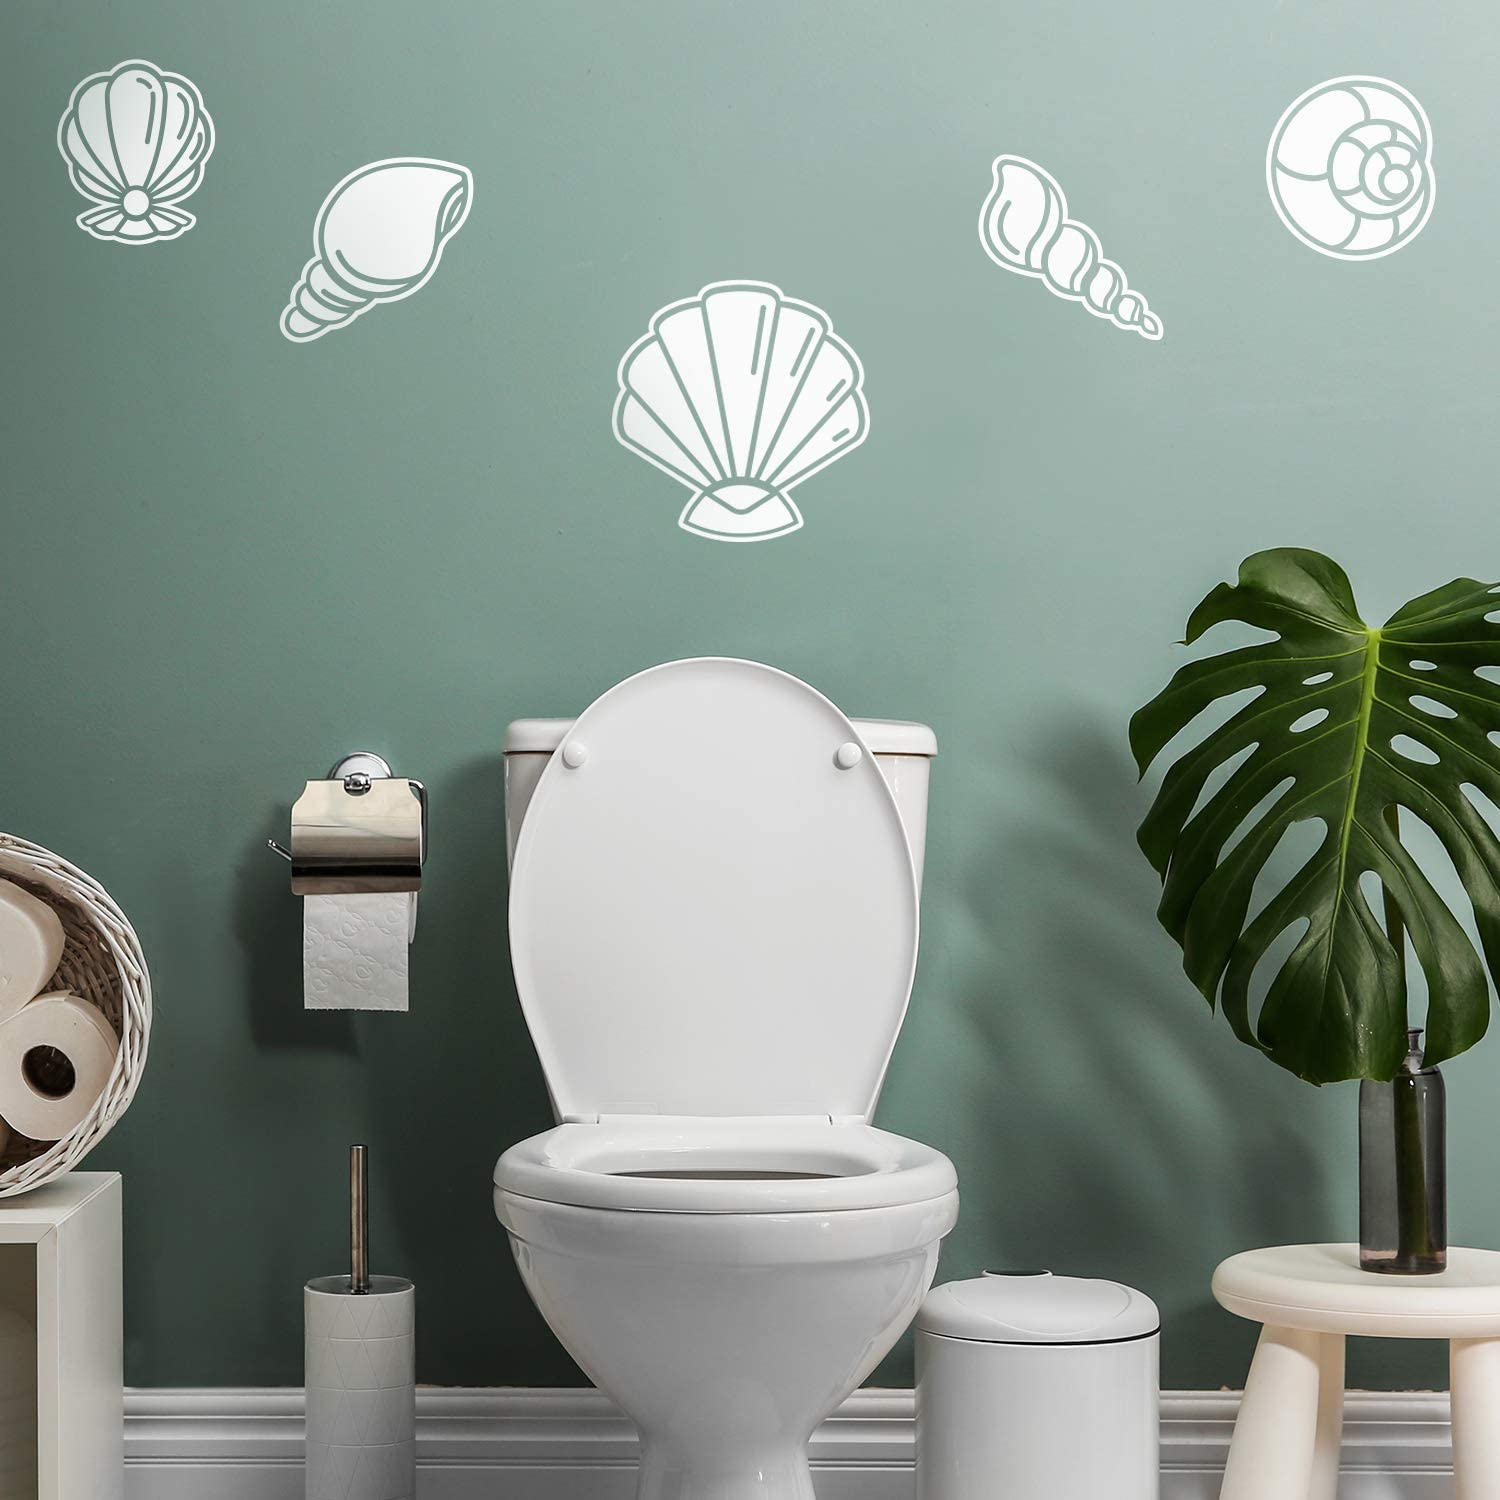 5 Pieces of Vinyl Wall Art Decal - Seashell Set - from 8